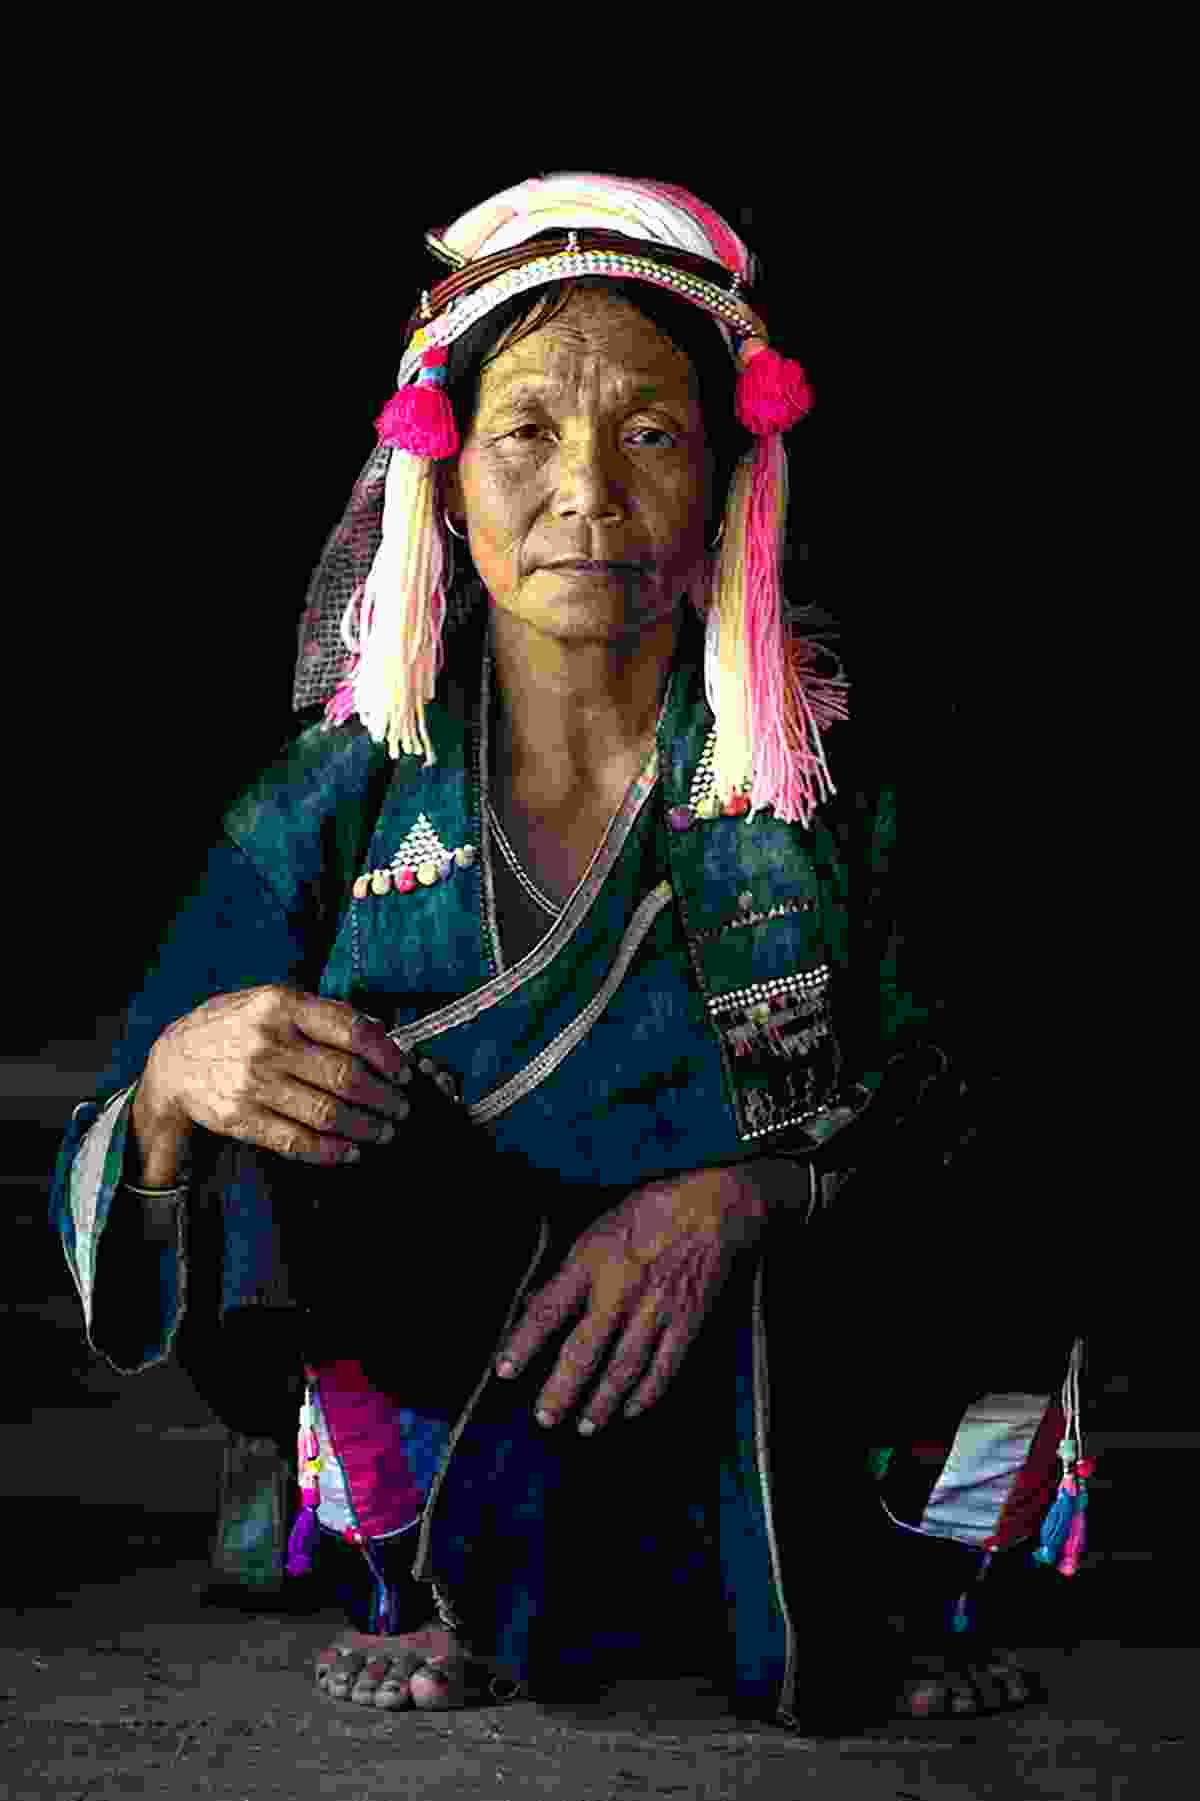 Lady from the Pink Ha Nhi in a remote area in the north of Vietnam (Réhahn photography)